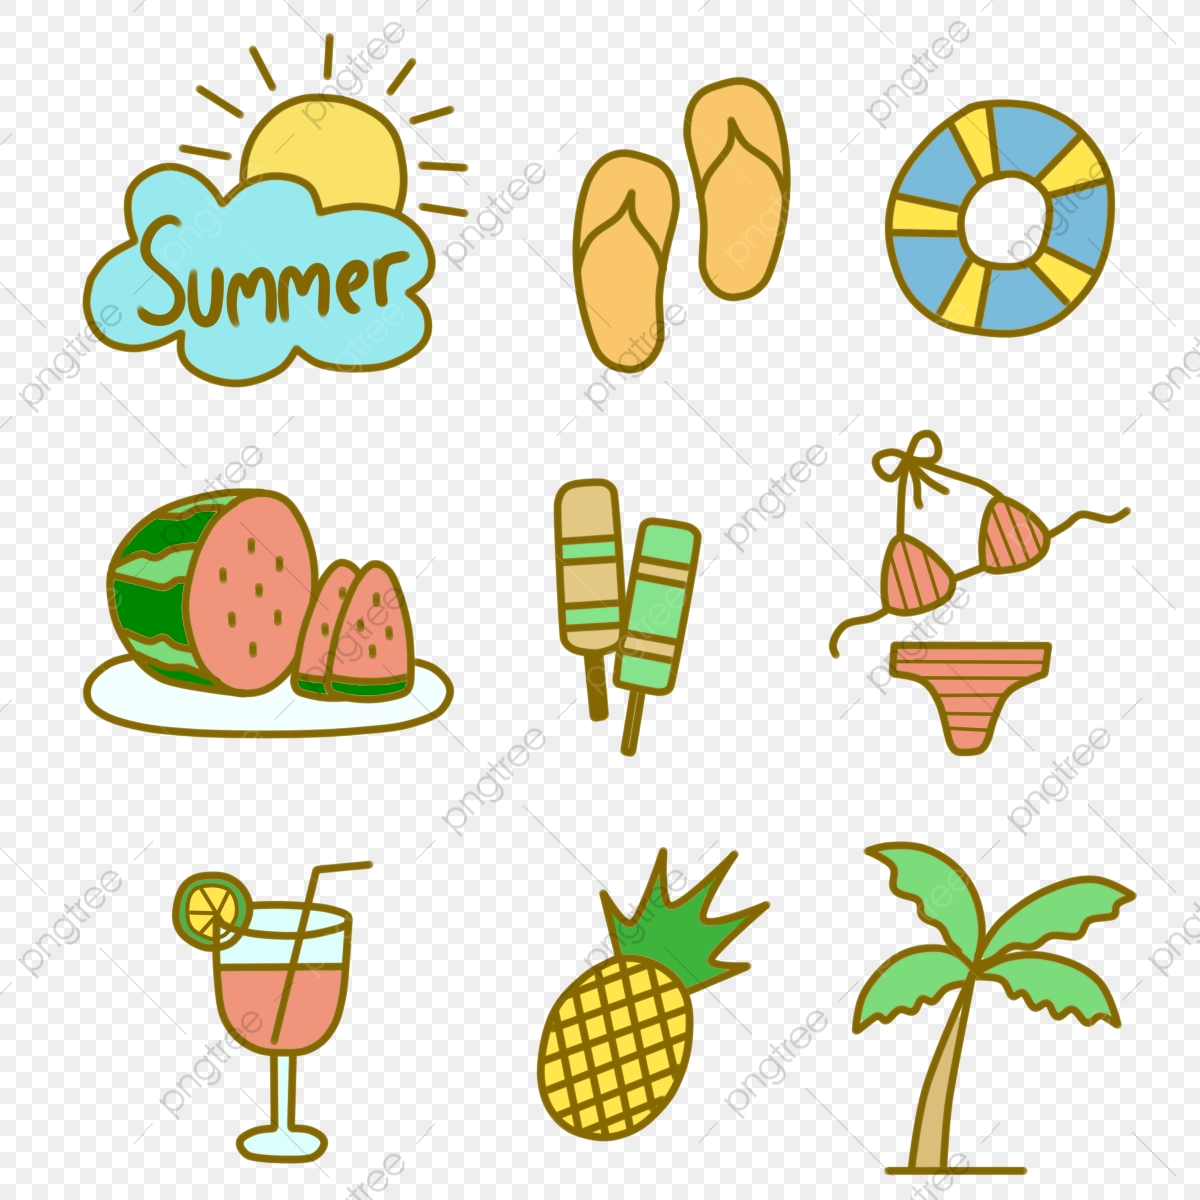 hand drawn summer icon with soft and pastel color pineaple sandals bikini png transparent clipart image and psd file for free download https pngtree com freepng hand drawn summer icon with soft and pastel color 4769752 html